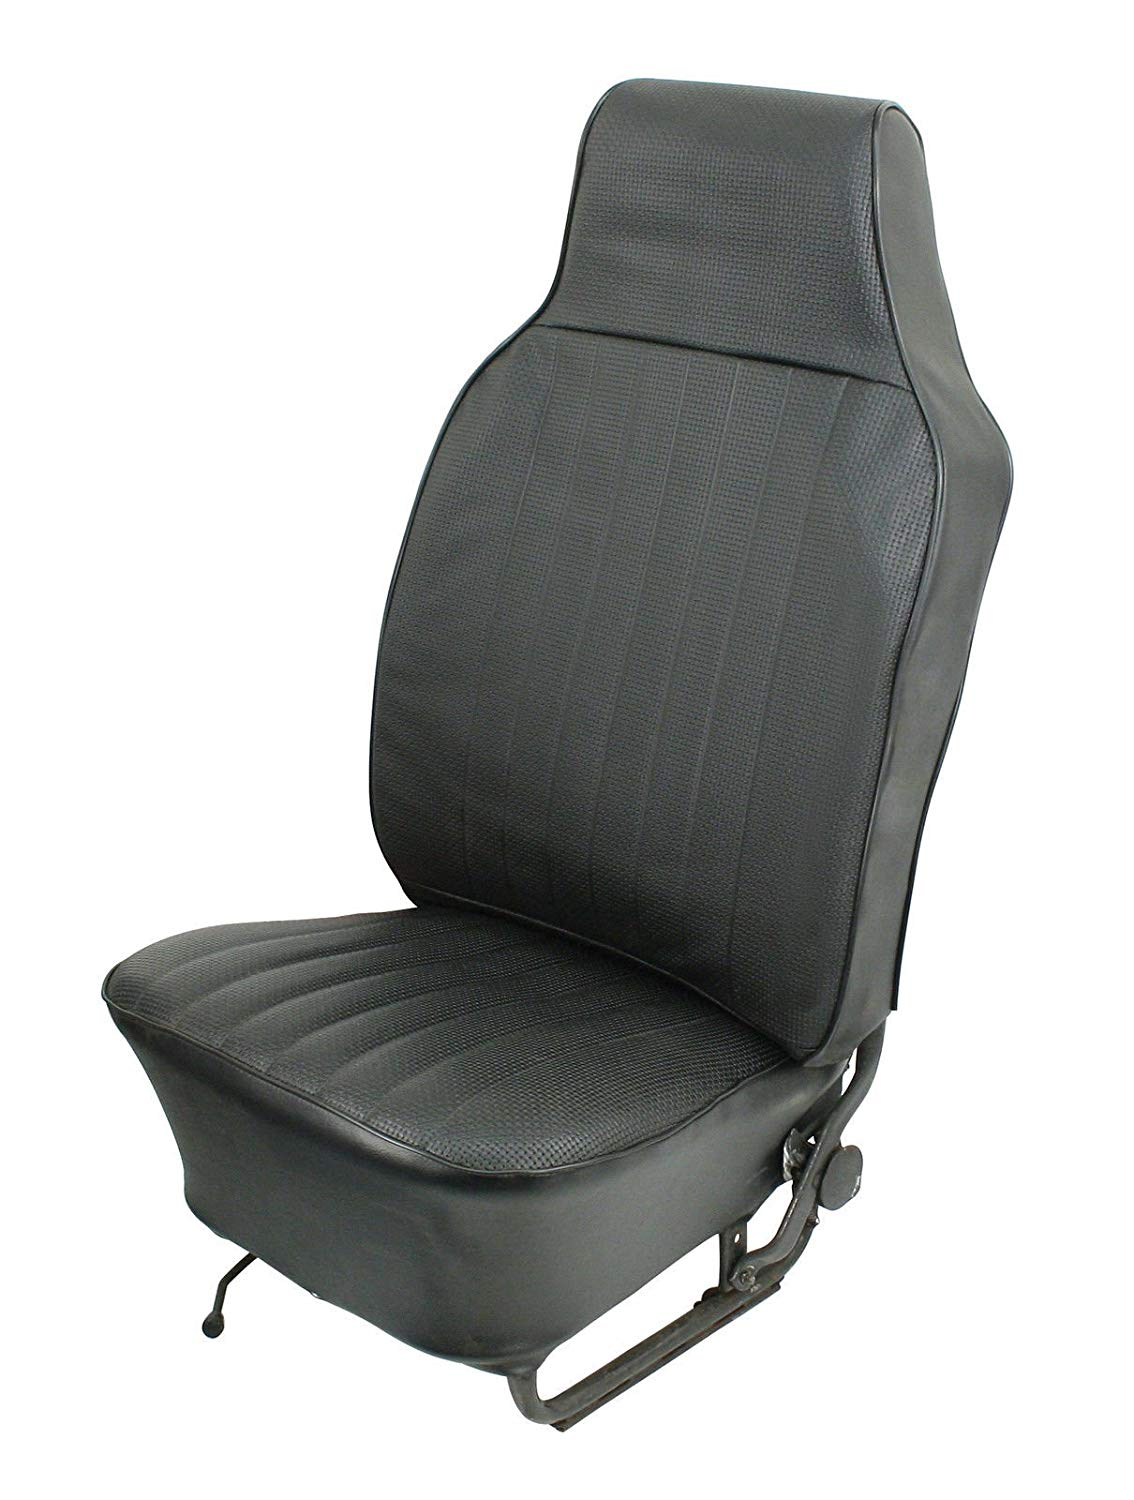 VW Bug Vinyl Seat Cover, Complete Set, Slip On Style, Black, Sedan 58-64